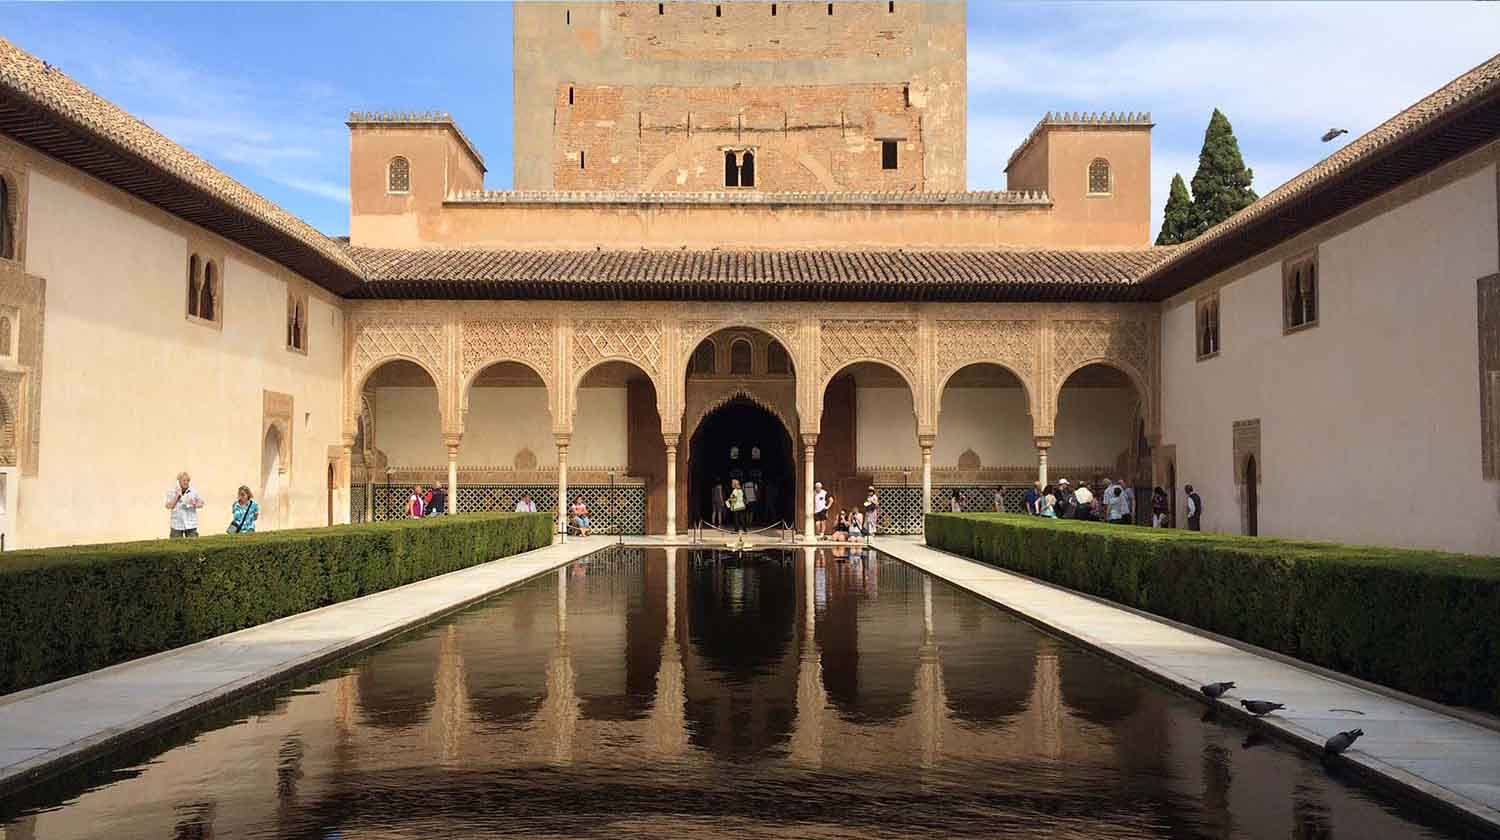 The Alhambra - Comares Palace